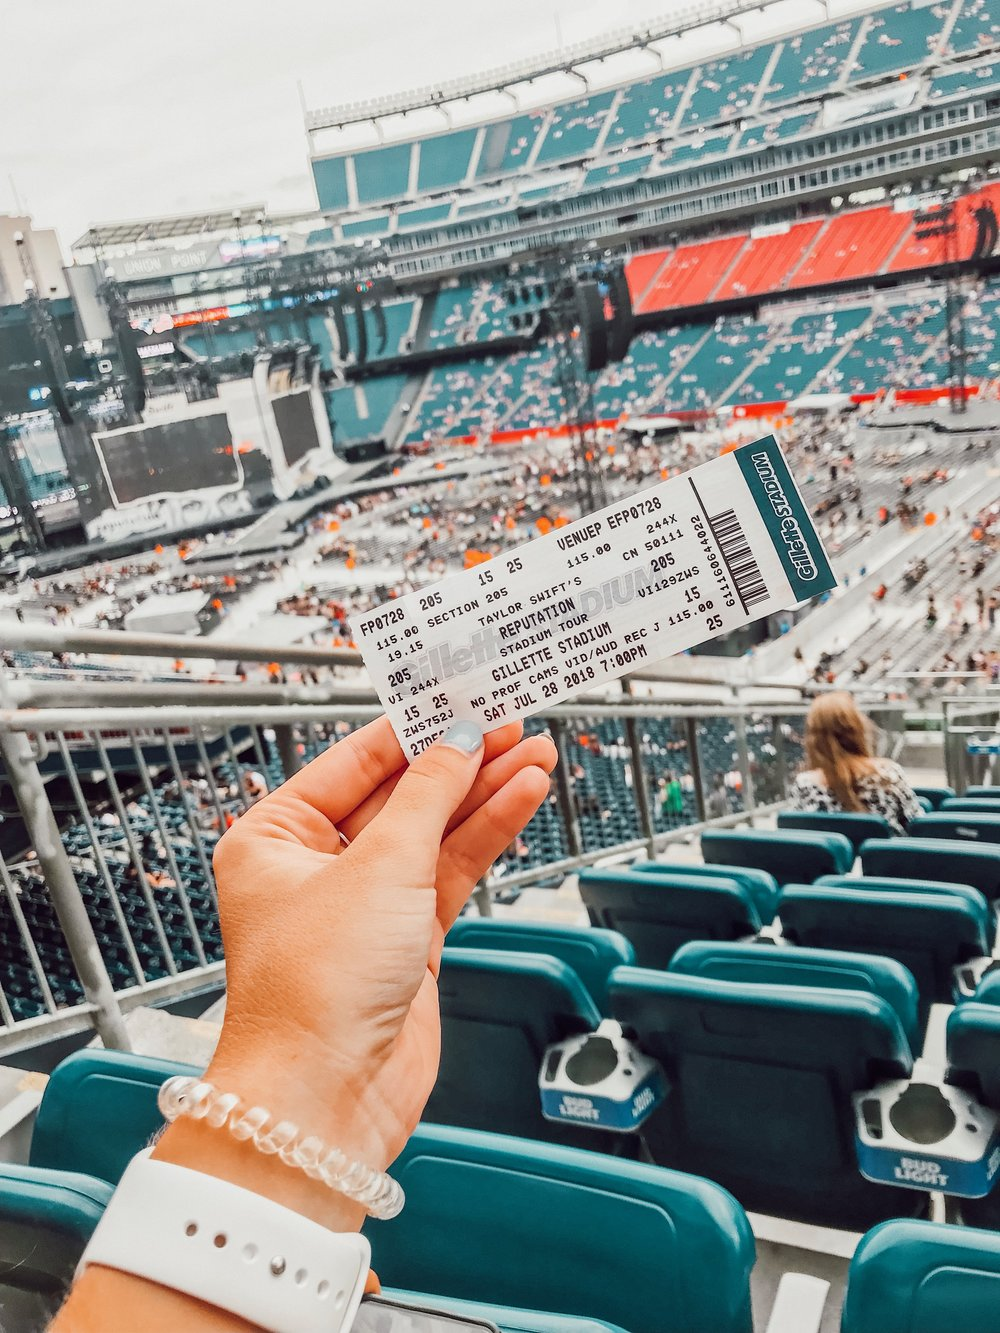 saw taylor swift live at gillette / went to gillette for the first time